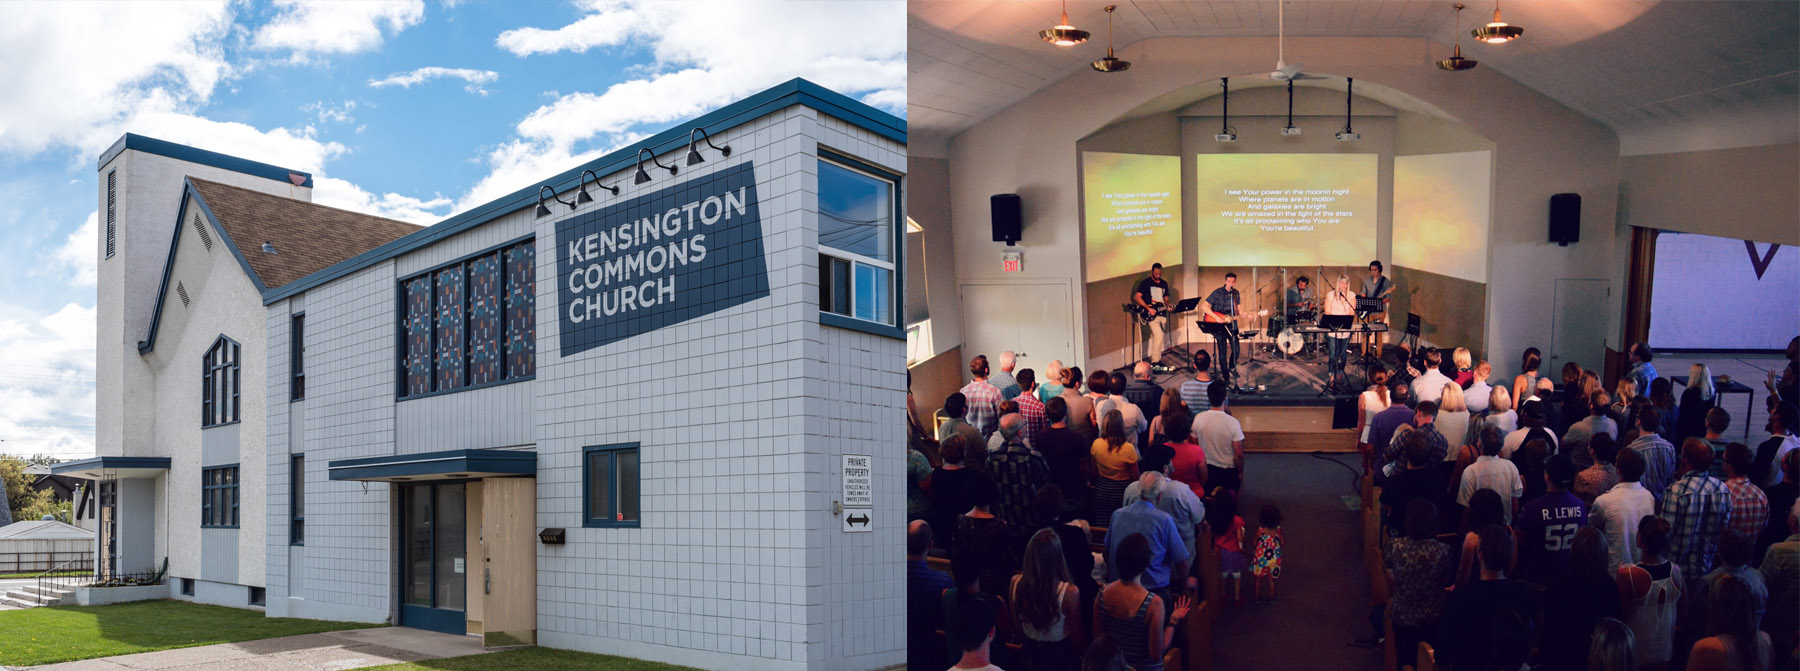 The Kensington Building today alongside a shot from the opening Sunday of Commons Church Sept 7, 2014